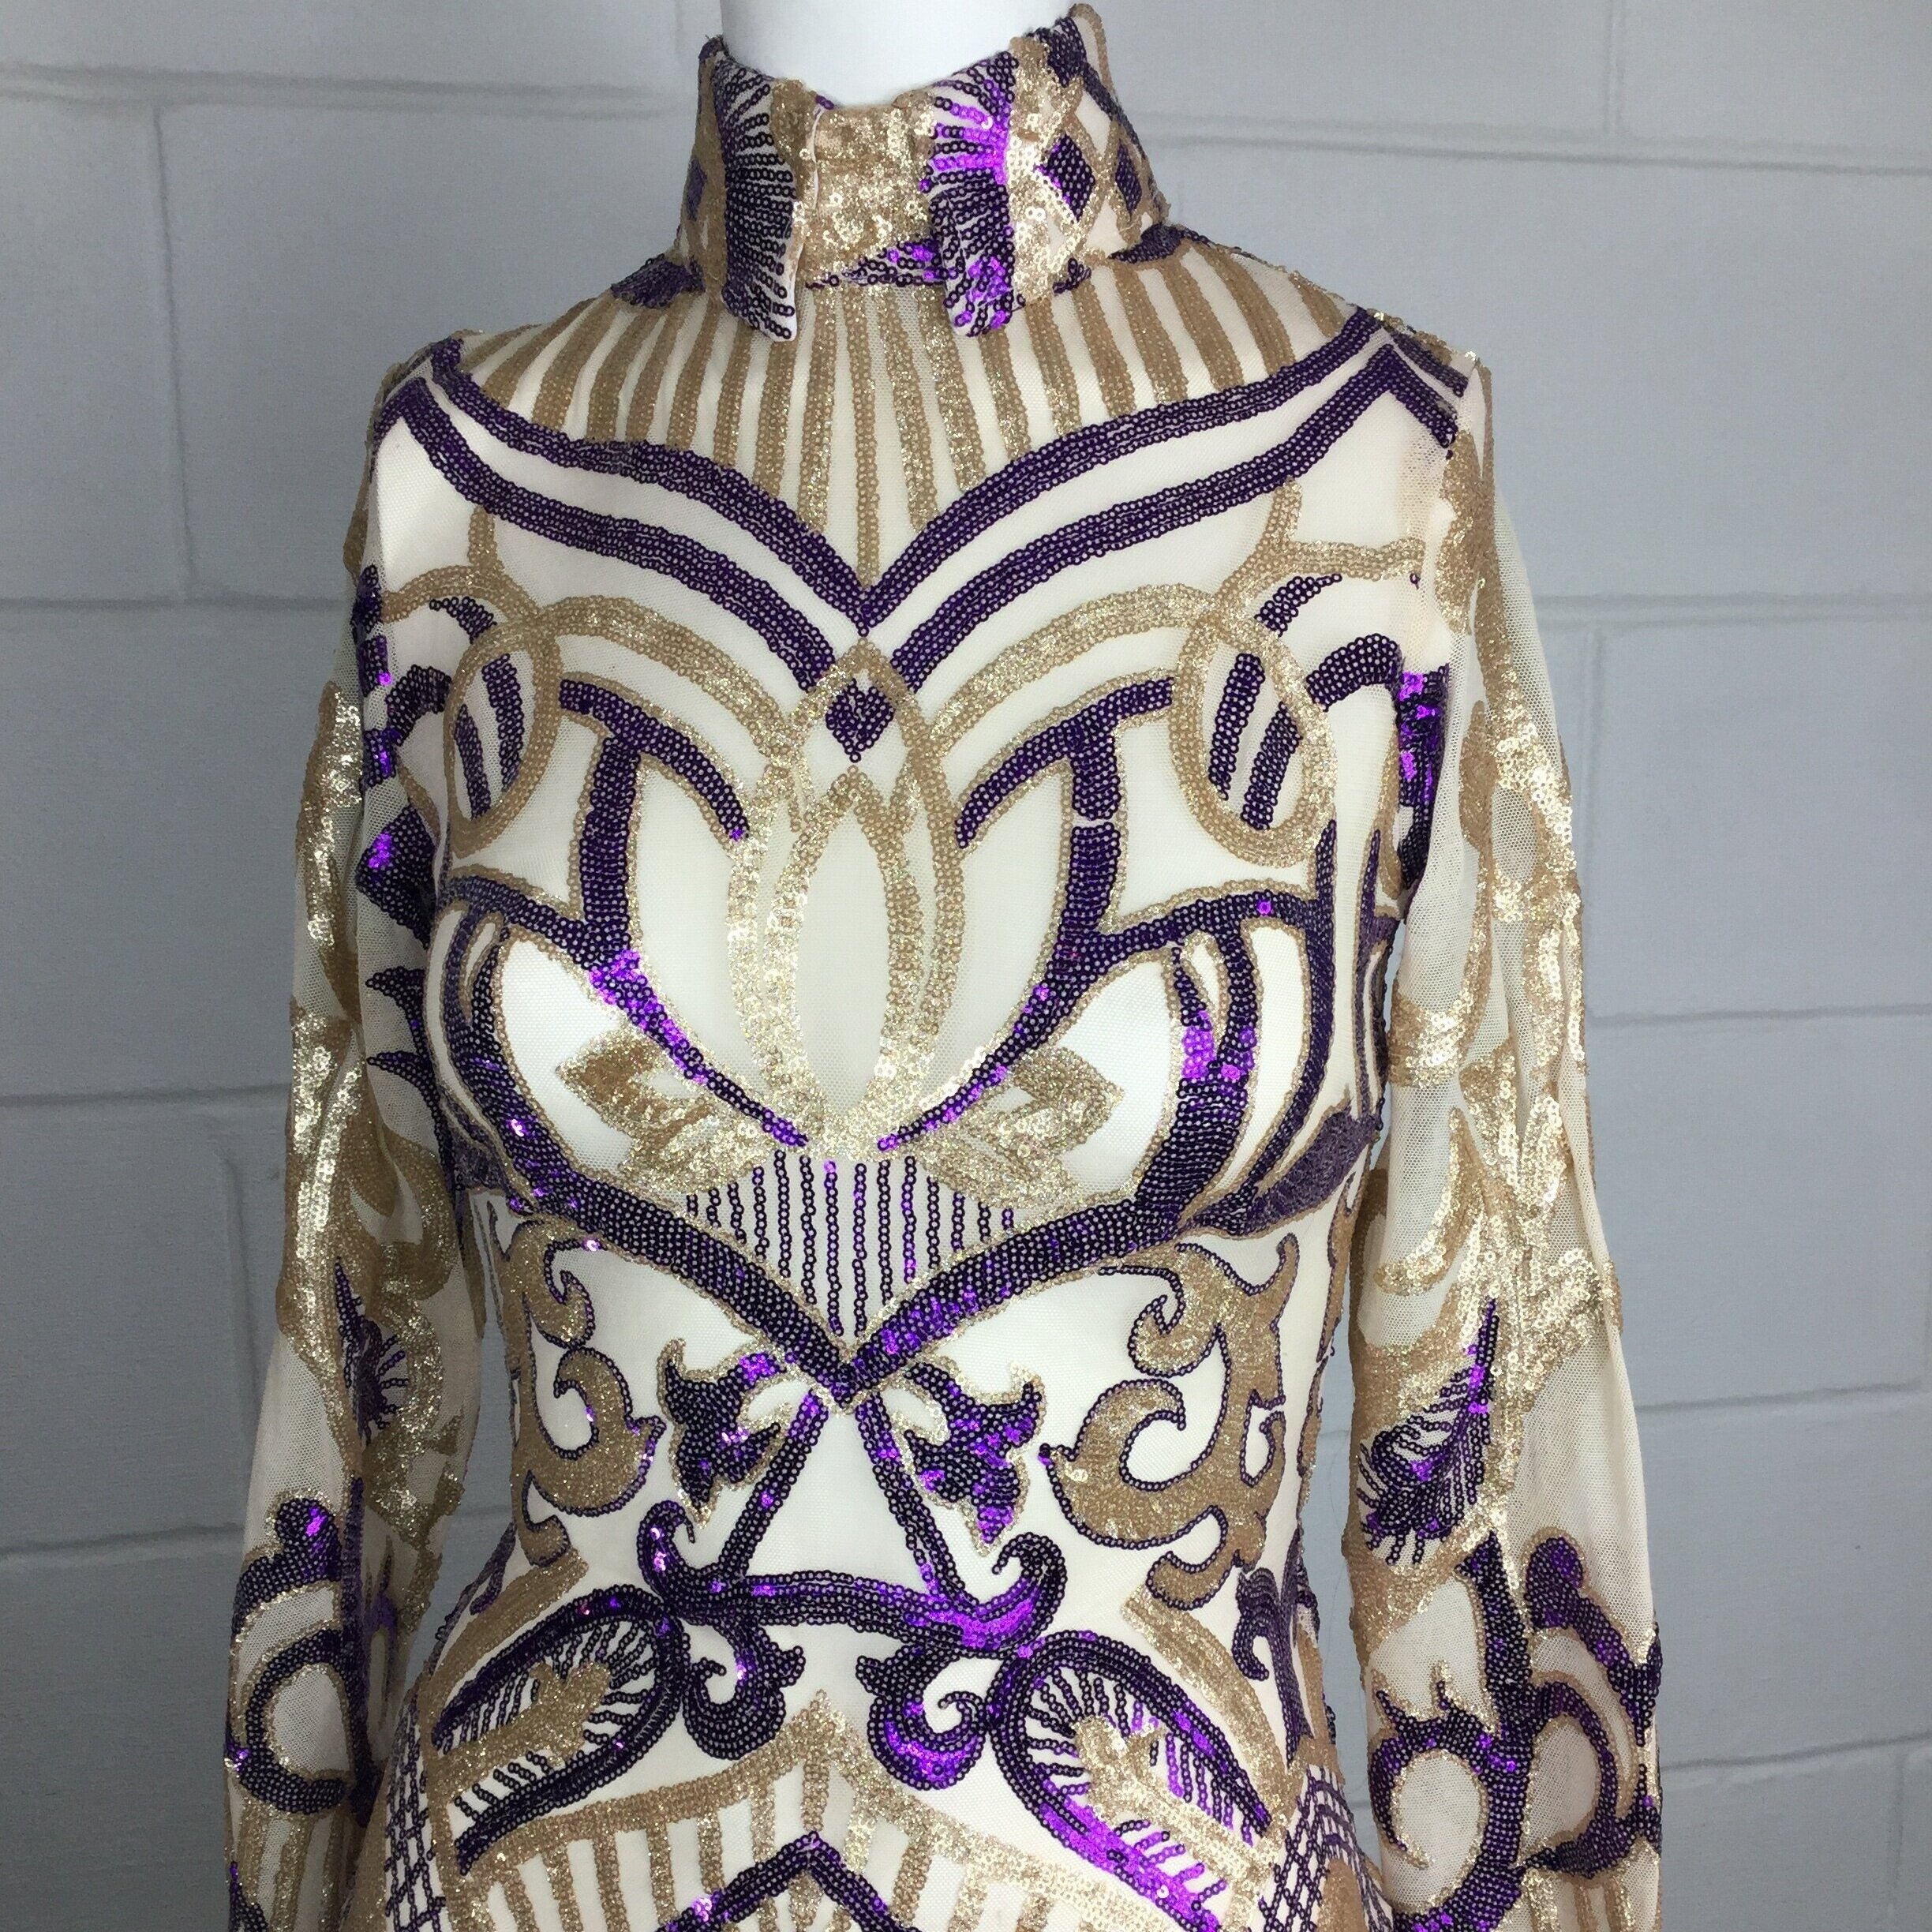 sparkle-ridge-western-show-clothes-horse-show-shirts-purple-gold-sequin-with-collar2.jpg